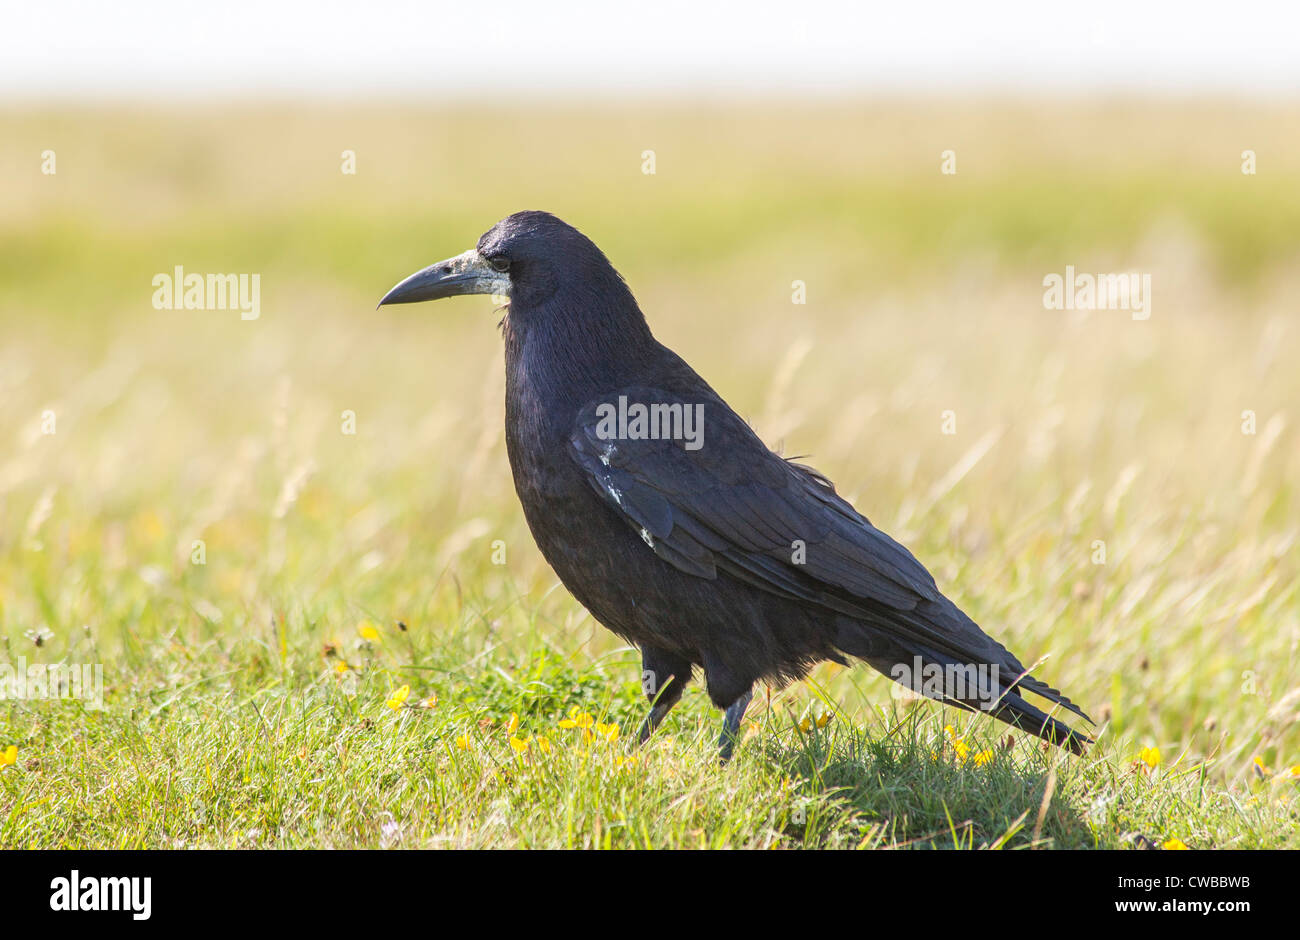 Black raven (Corvus corax) standing in a field in the Isle of Wight, southern England - Stock Image